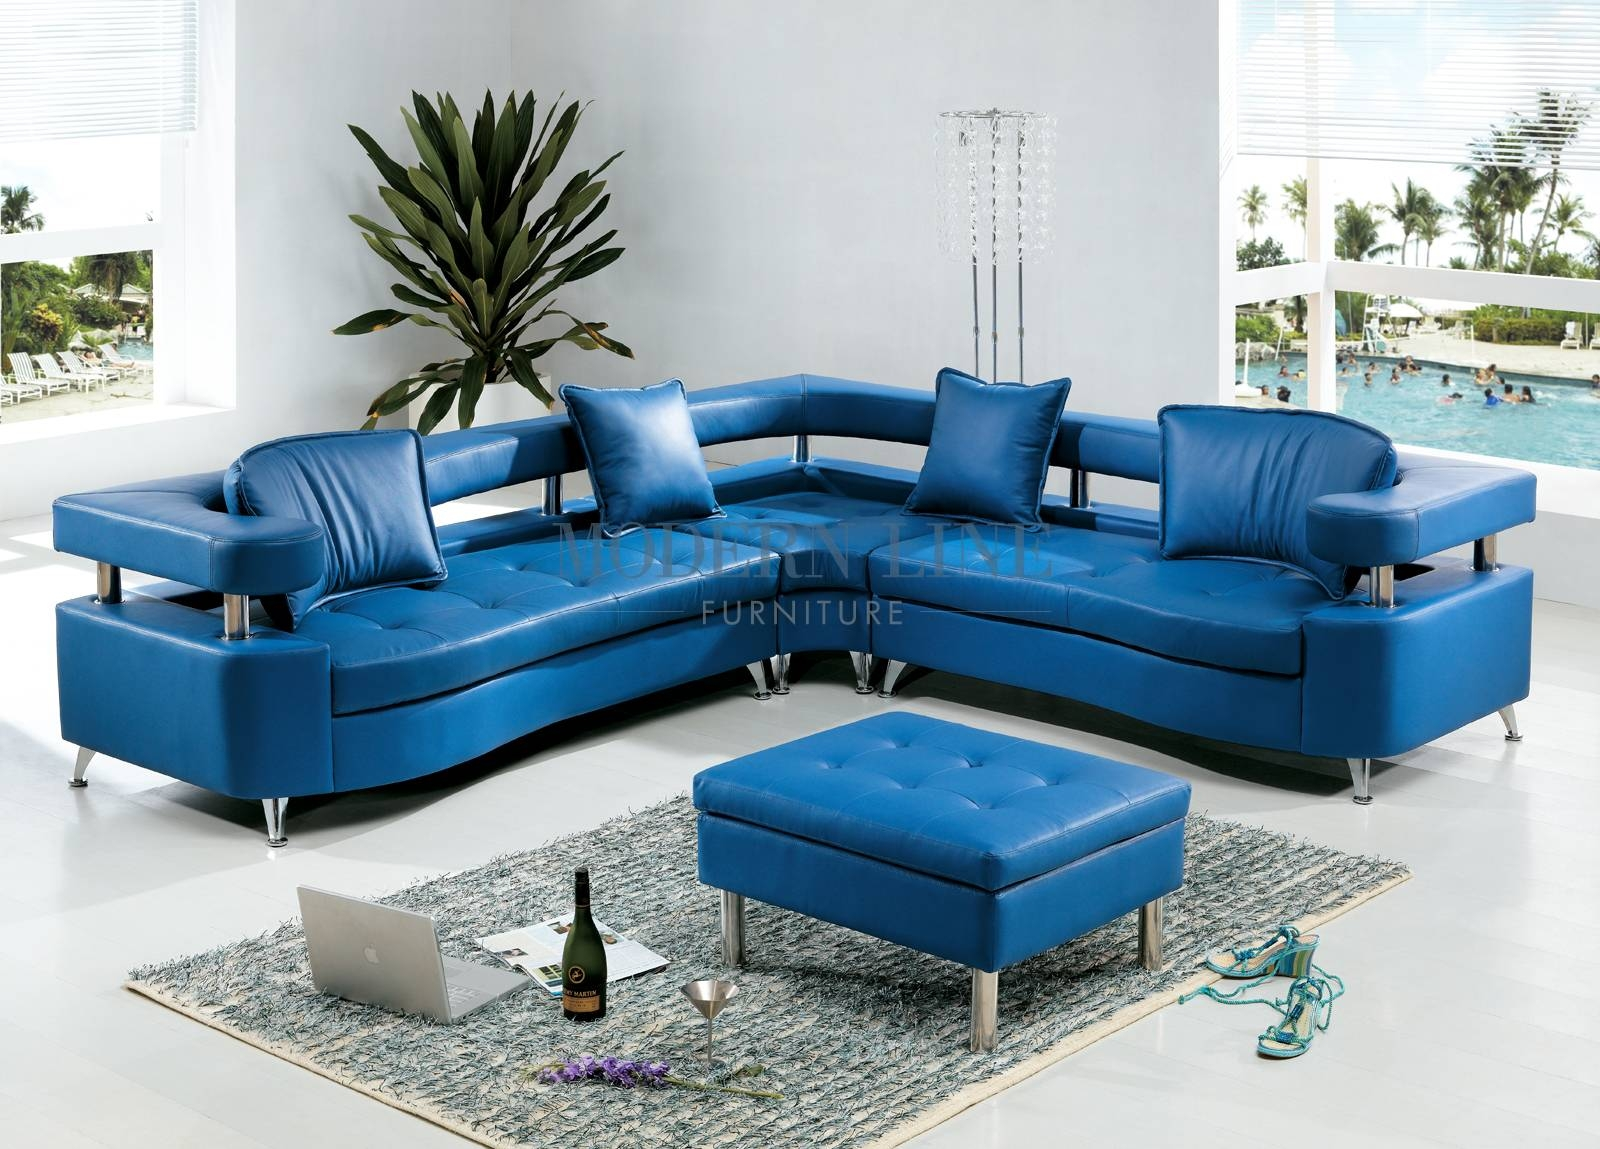 Modern Line Furniture - Commercial Furniture - Custom Made in Blue Leather Sectional Sofas (Image 9 of 15)